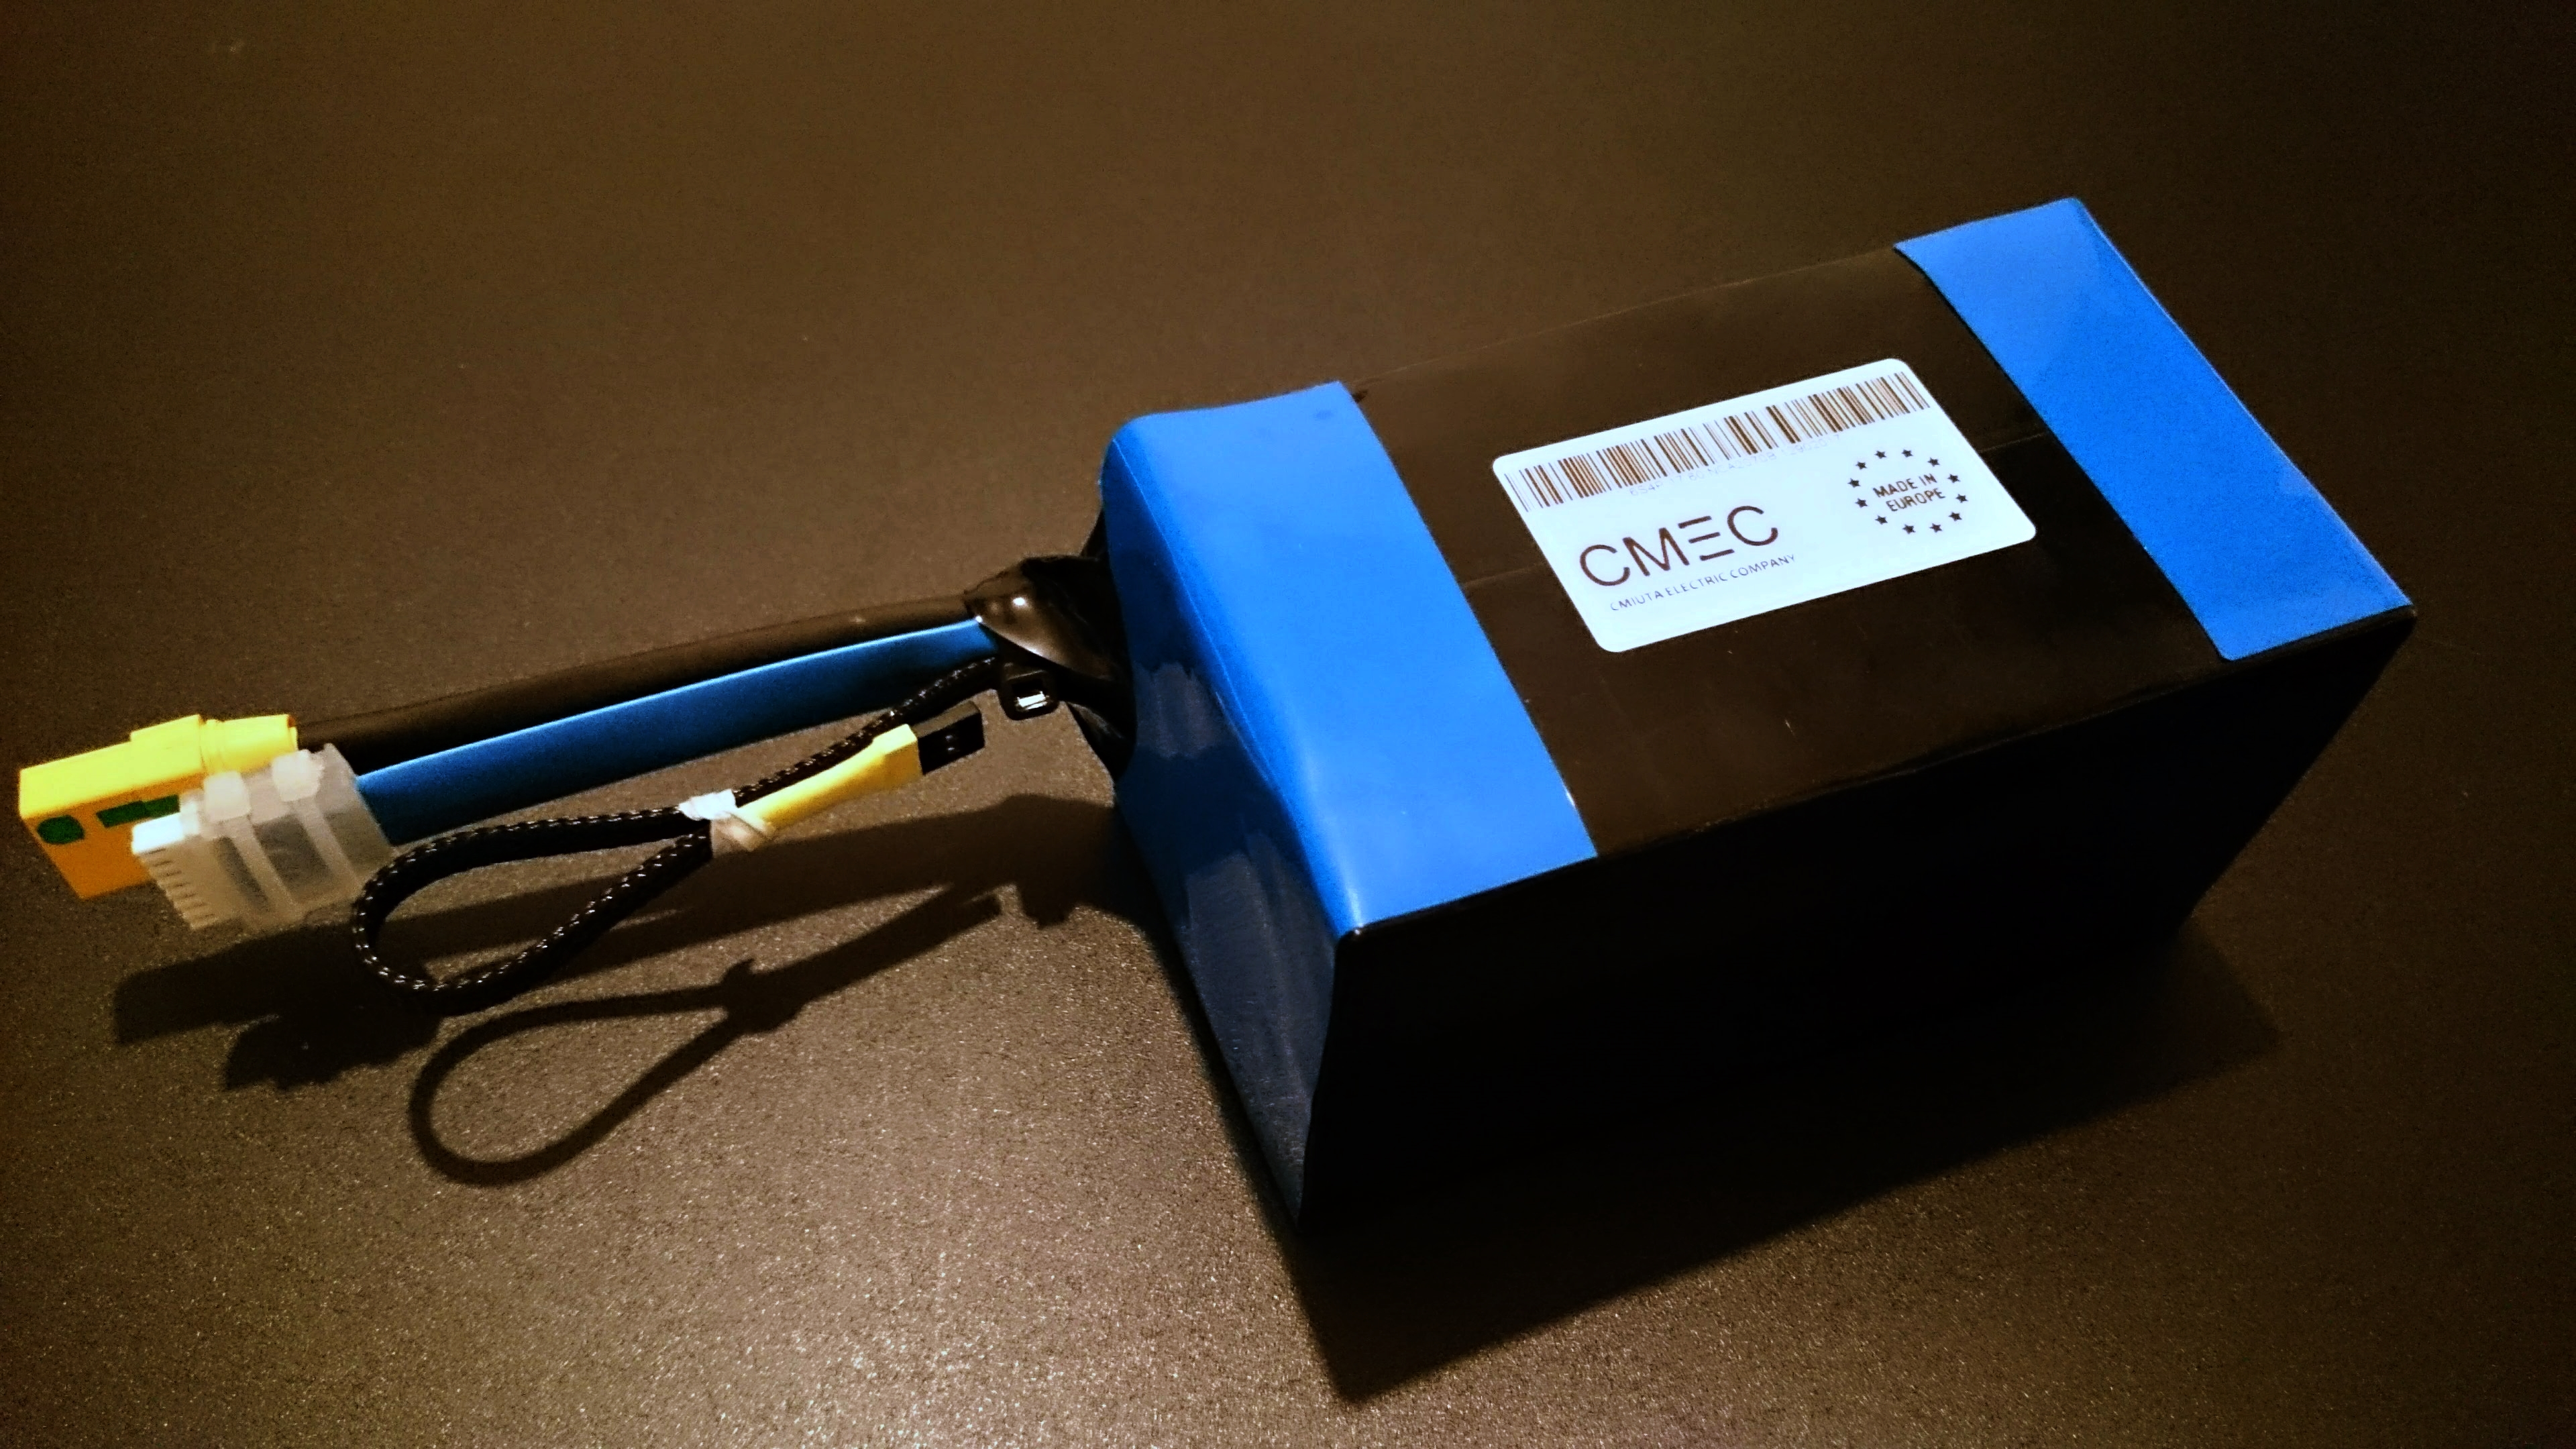 CMEC Lithium-Ion Battery Pack for UAVs